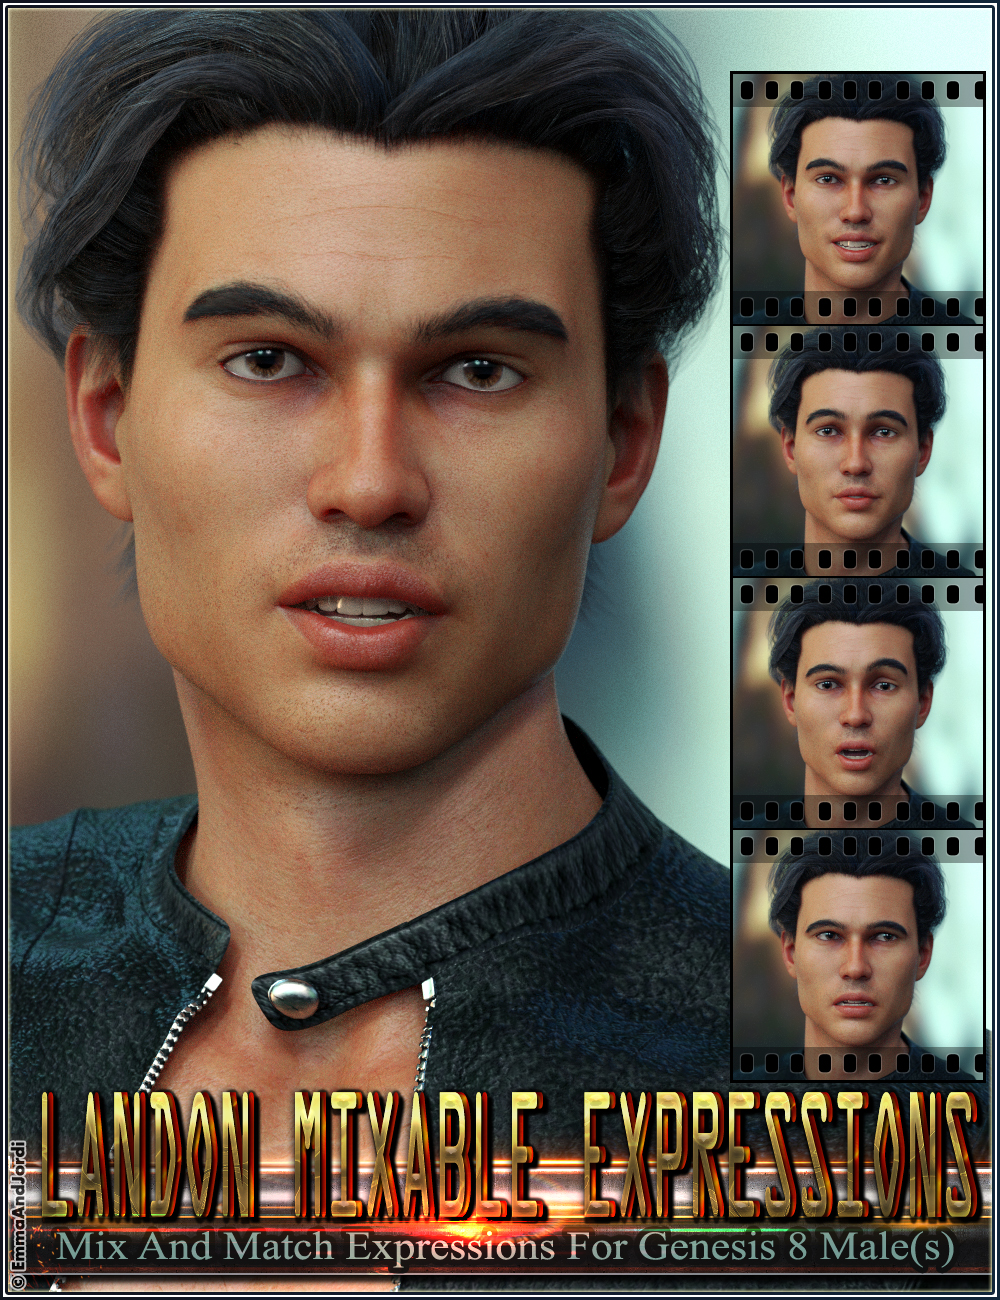 Mixable Expressions for Landon 8 and Genesis 8 Male by: EmmaAndJordi, 3D Models by Daz 3D